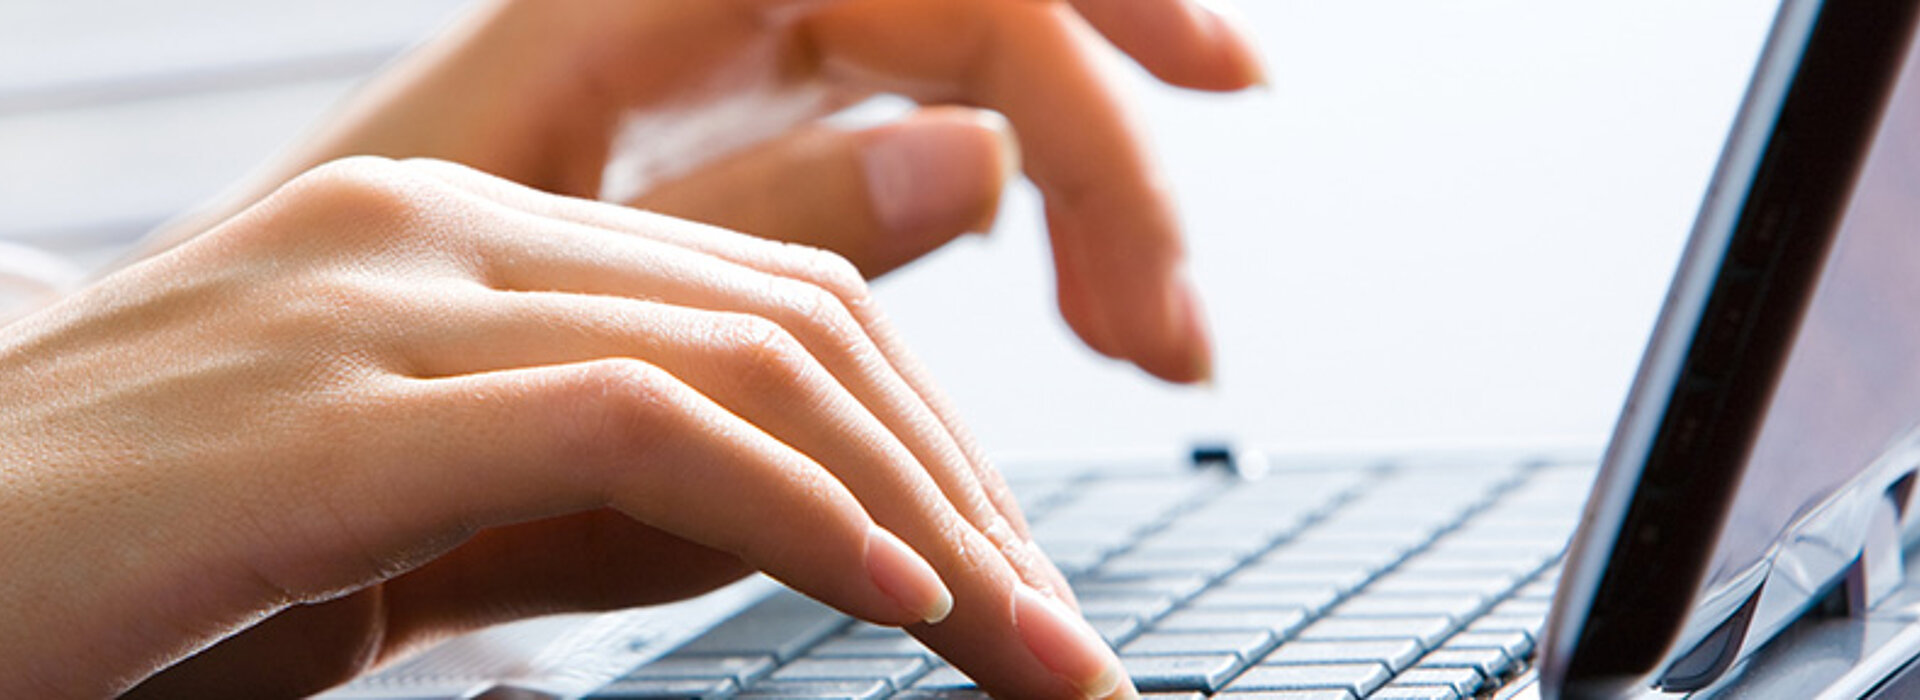 Close-up of Hands typing on a Laptop Keyboard